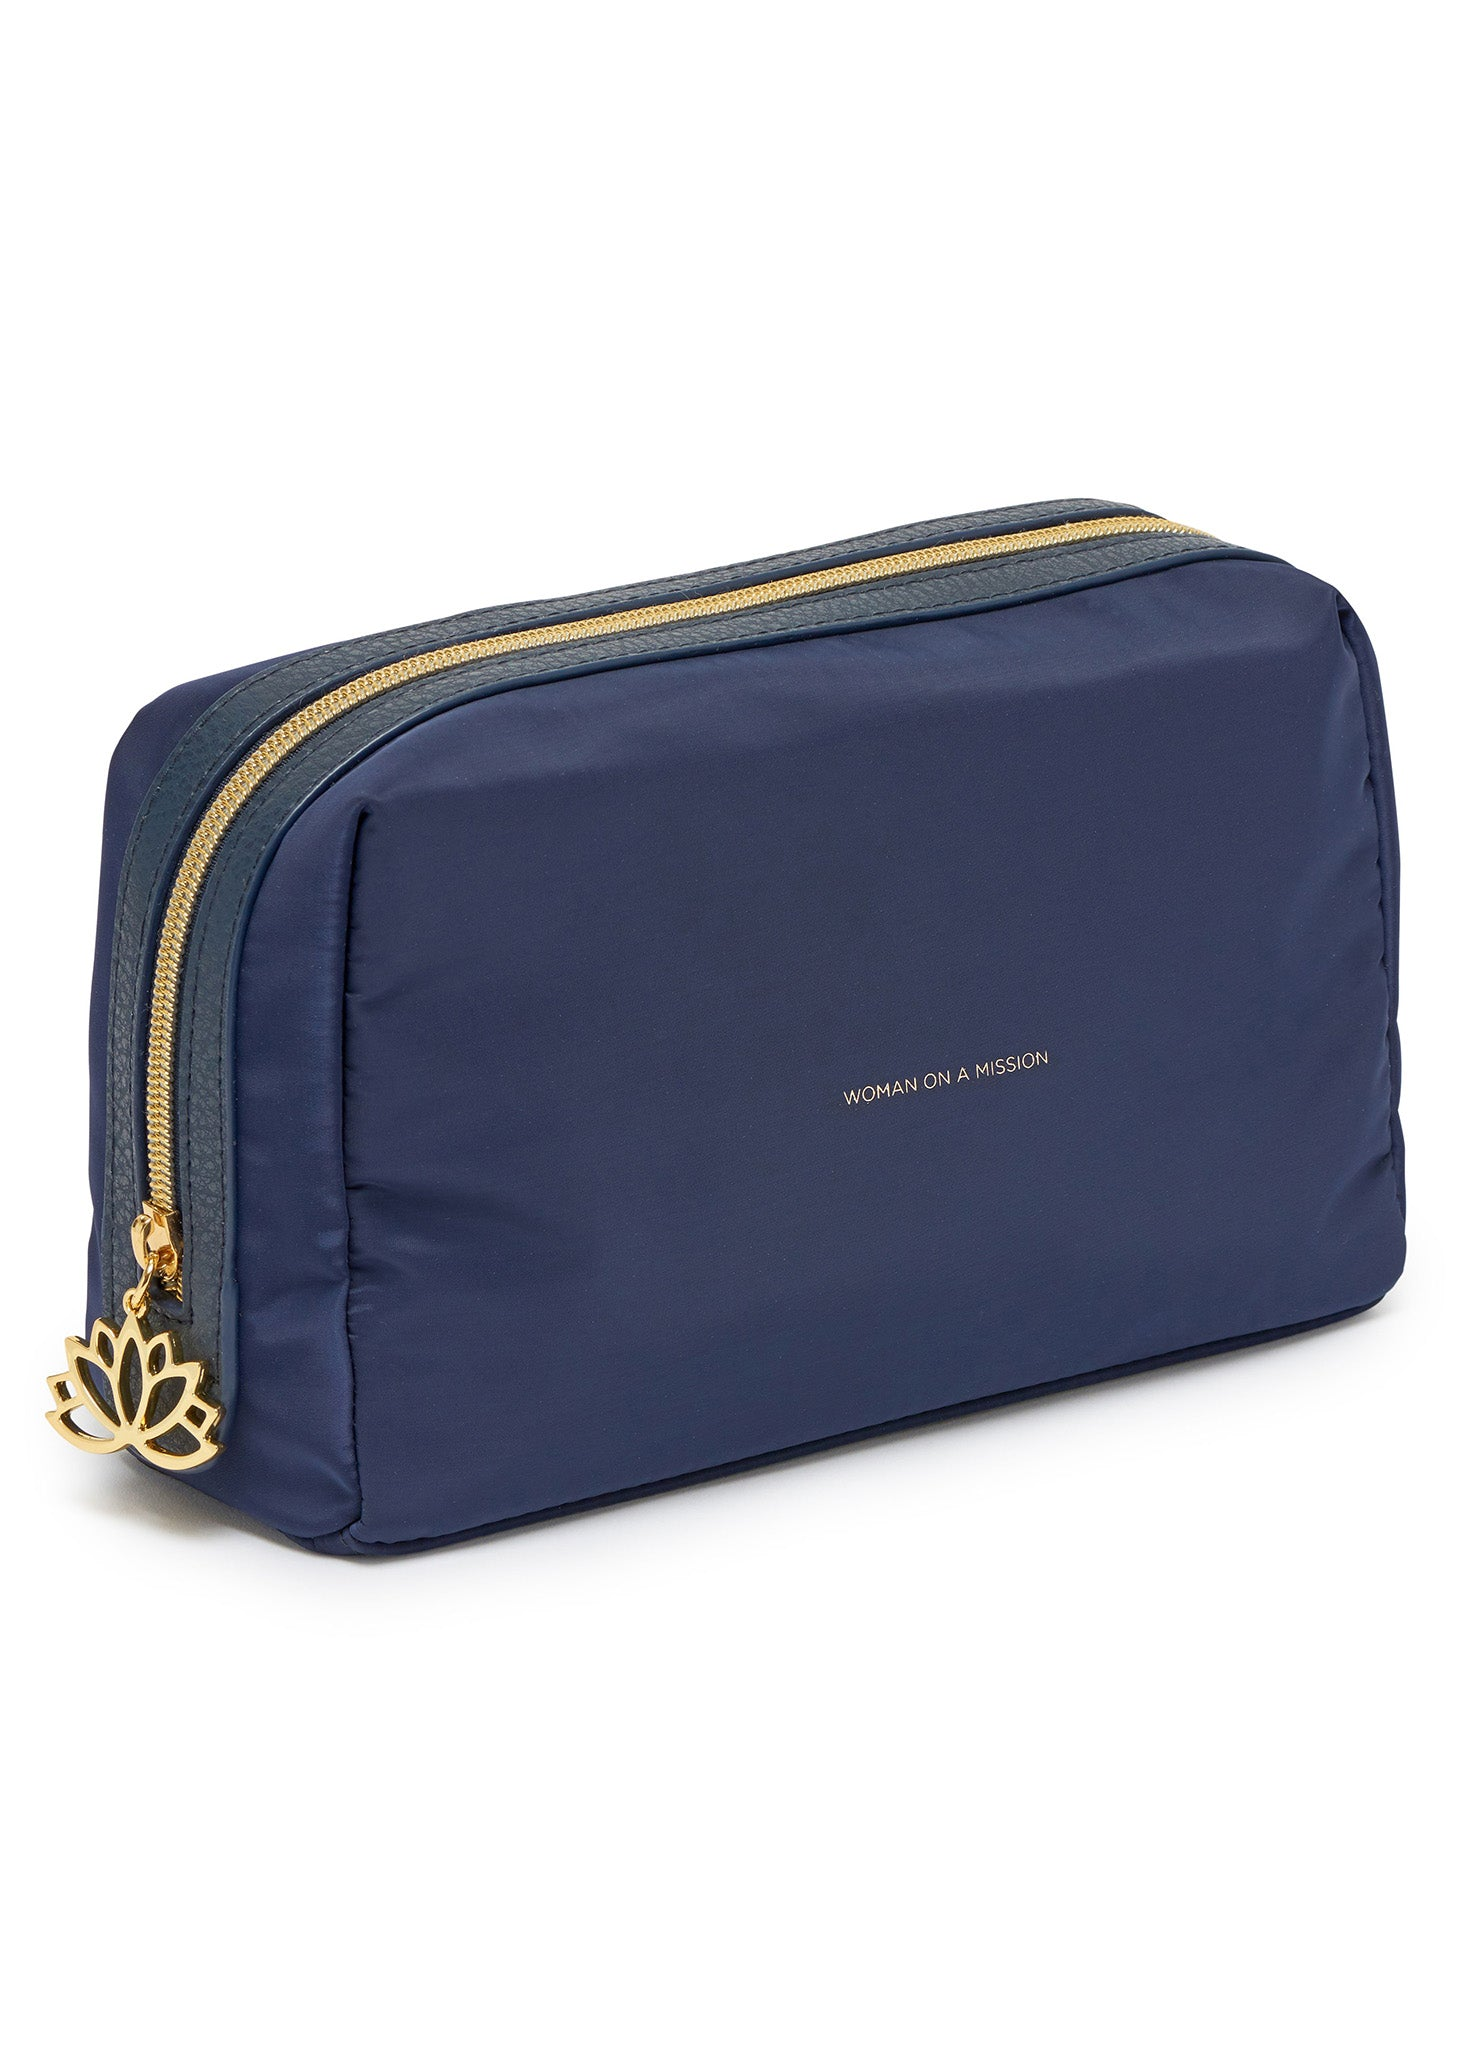 Estella Bartlett 'Woman On A Mission' Travel Pouch in Navy